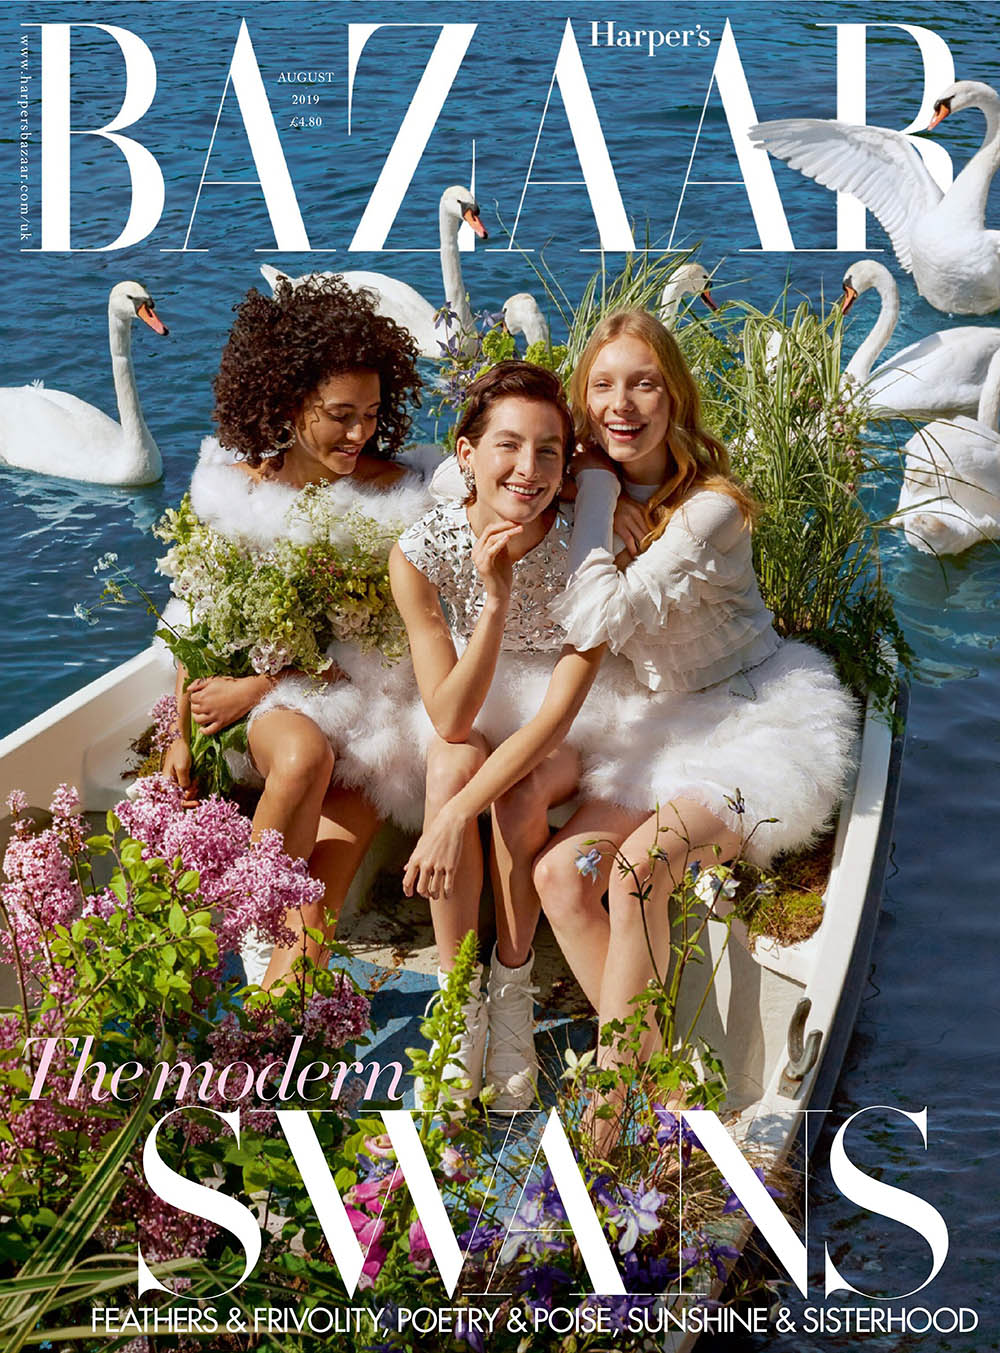 Mélodie Vaxelaire, Heather Kemesky and Demy de Vries cover Harper's Bazaar UK August 2019 by Agata Pospieszynska